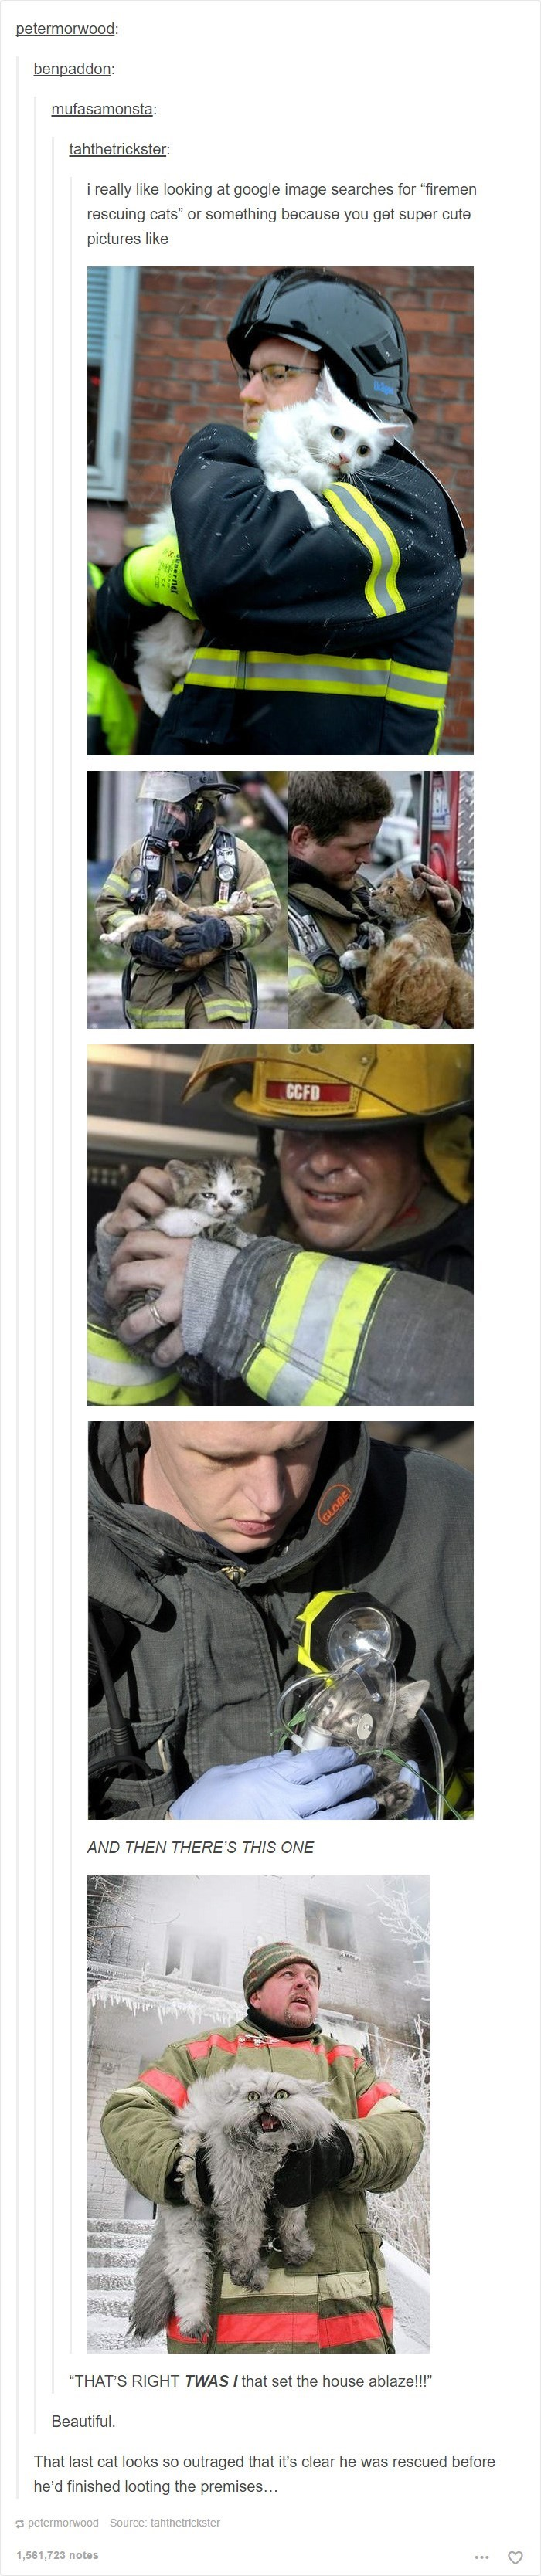 """Helmet - petermorwood: benpaddon: mufasamonsta: tahthetrickster really like looking at google image searches for """"firemen rescuing cats"""" or something because you get super cute pictures like CCFD AND THEN THERE'S THIS ONE """"THAT'S RIGHT TWAS I that set the house ablaze!!!"""" Beautiful That last cat looks so outraged that it's clear he was rescued before he'd finished looting the premises.. petermorwood Source: tahthetrickster 1,561,723 notes"""